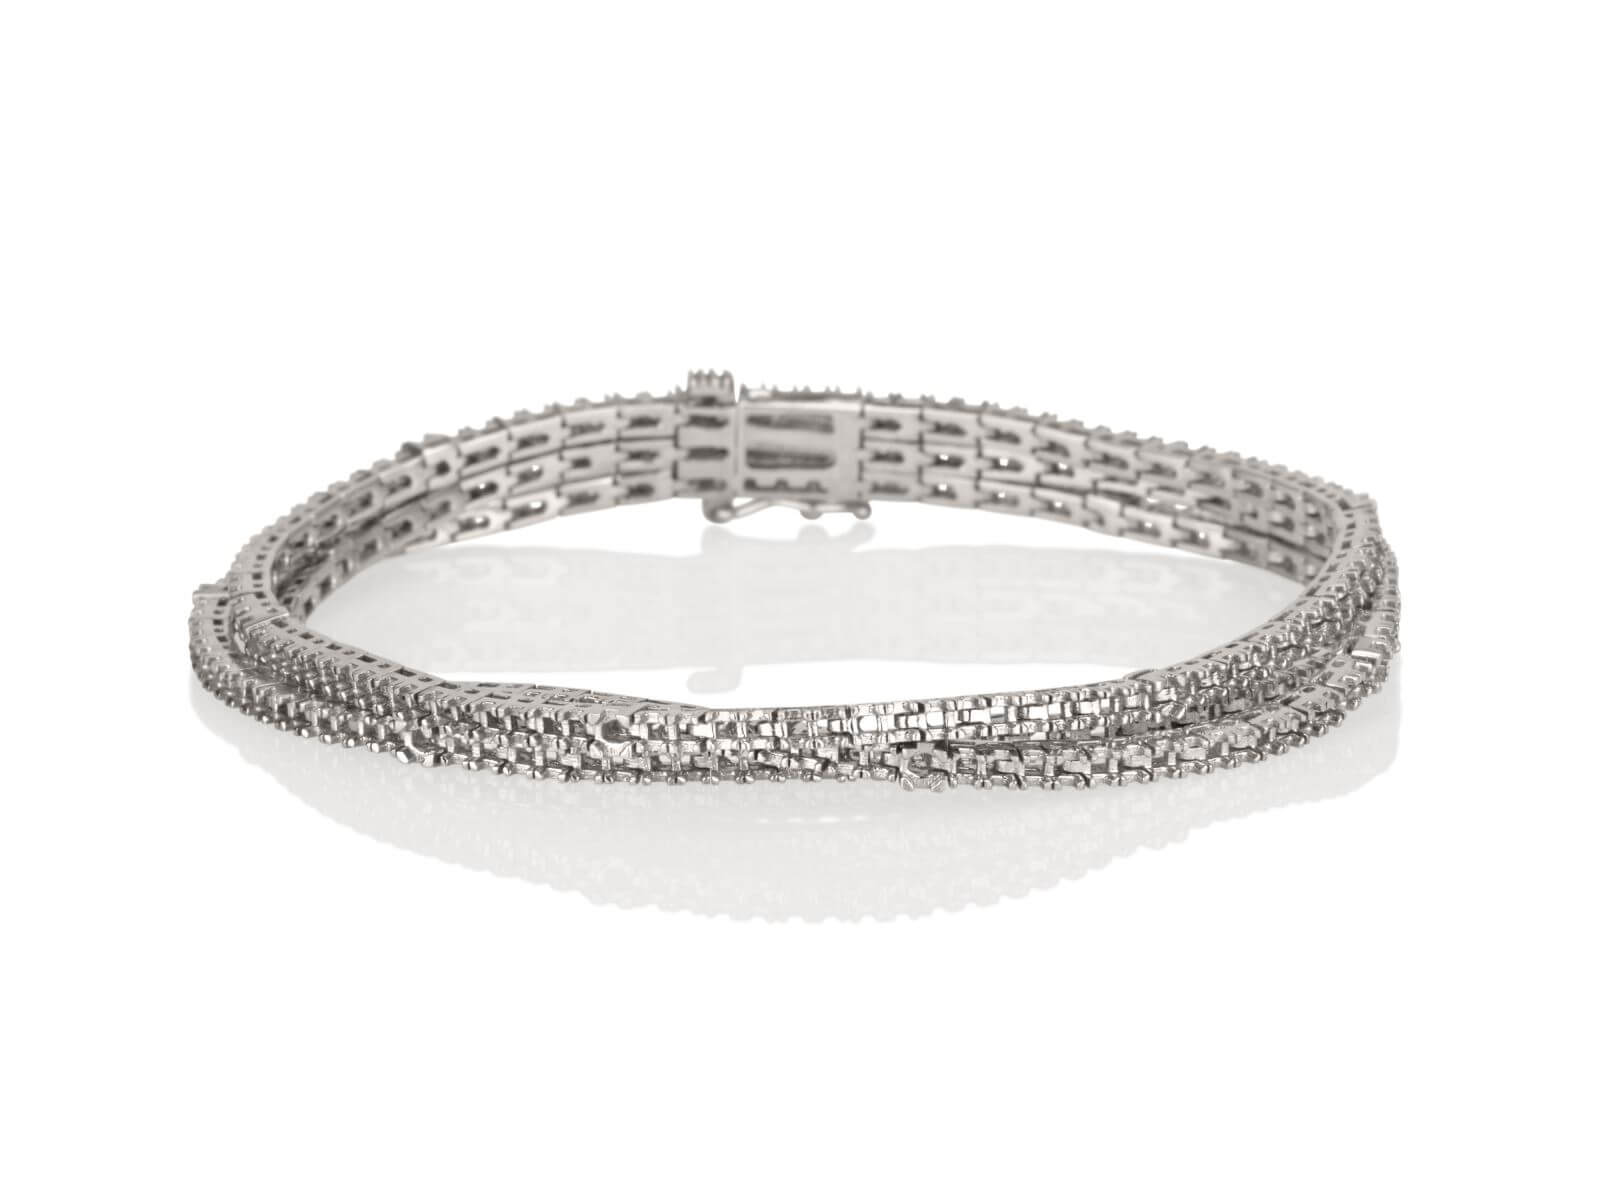 Tennis bracelet 3 Lines 4 prongs 1